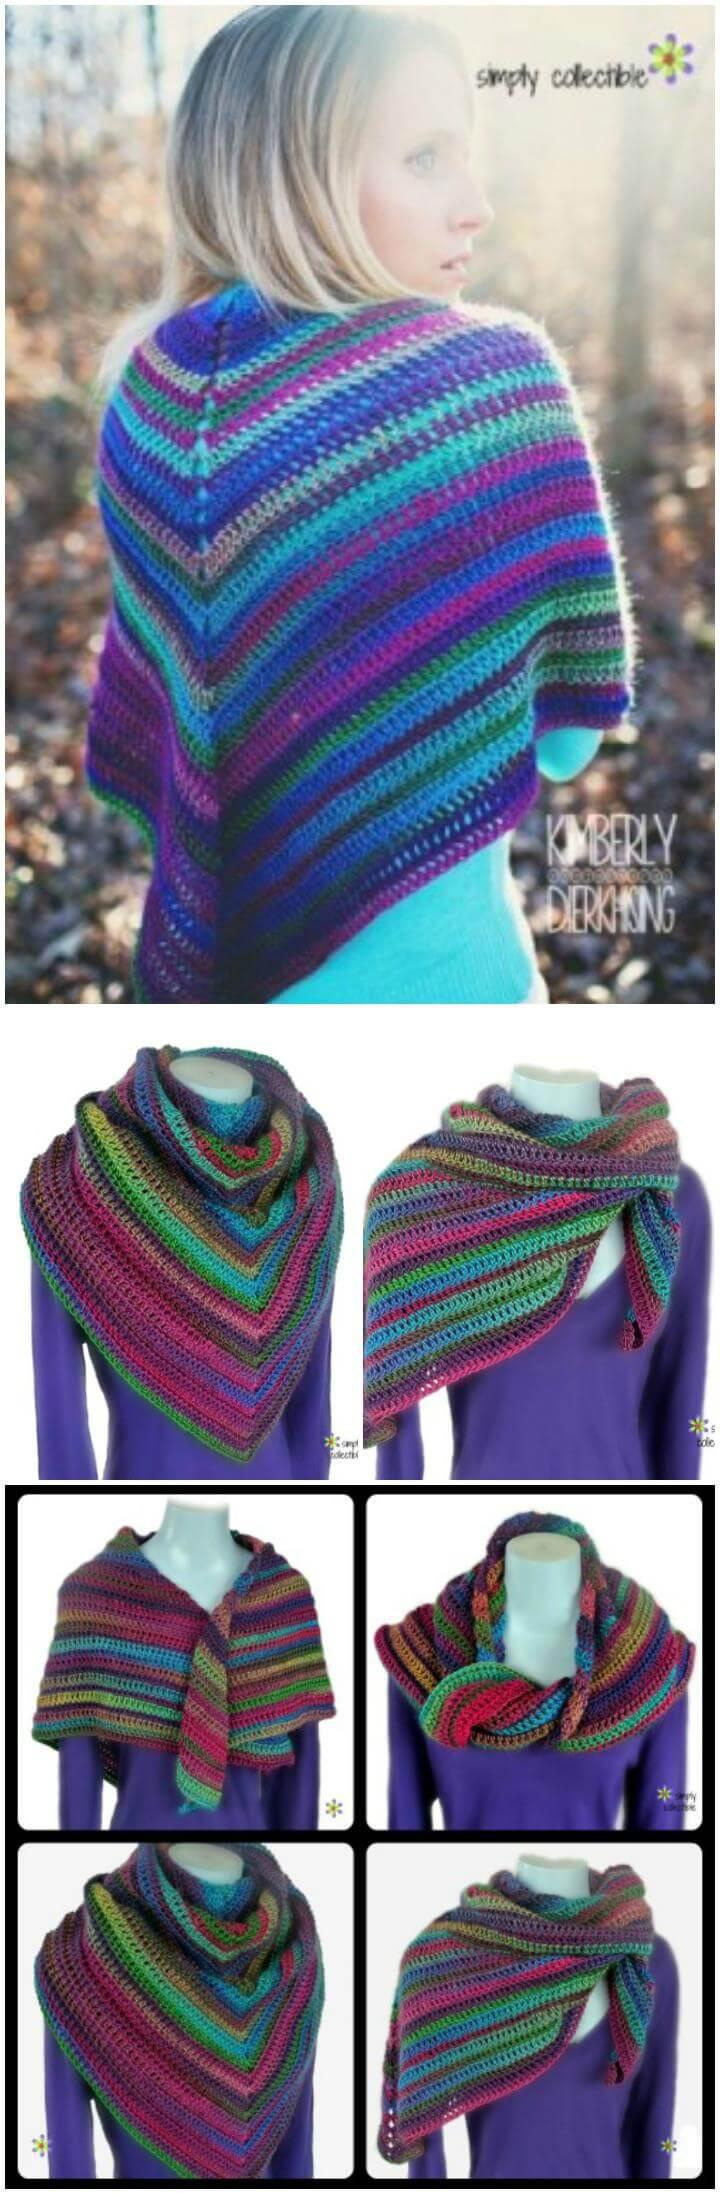 crochet lily's rose garden shawl or cowl